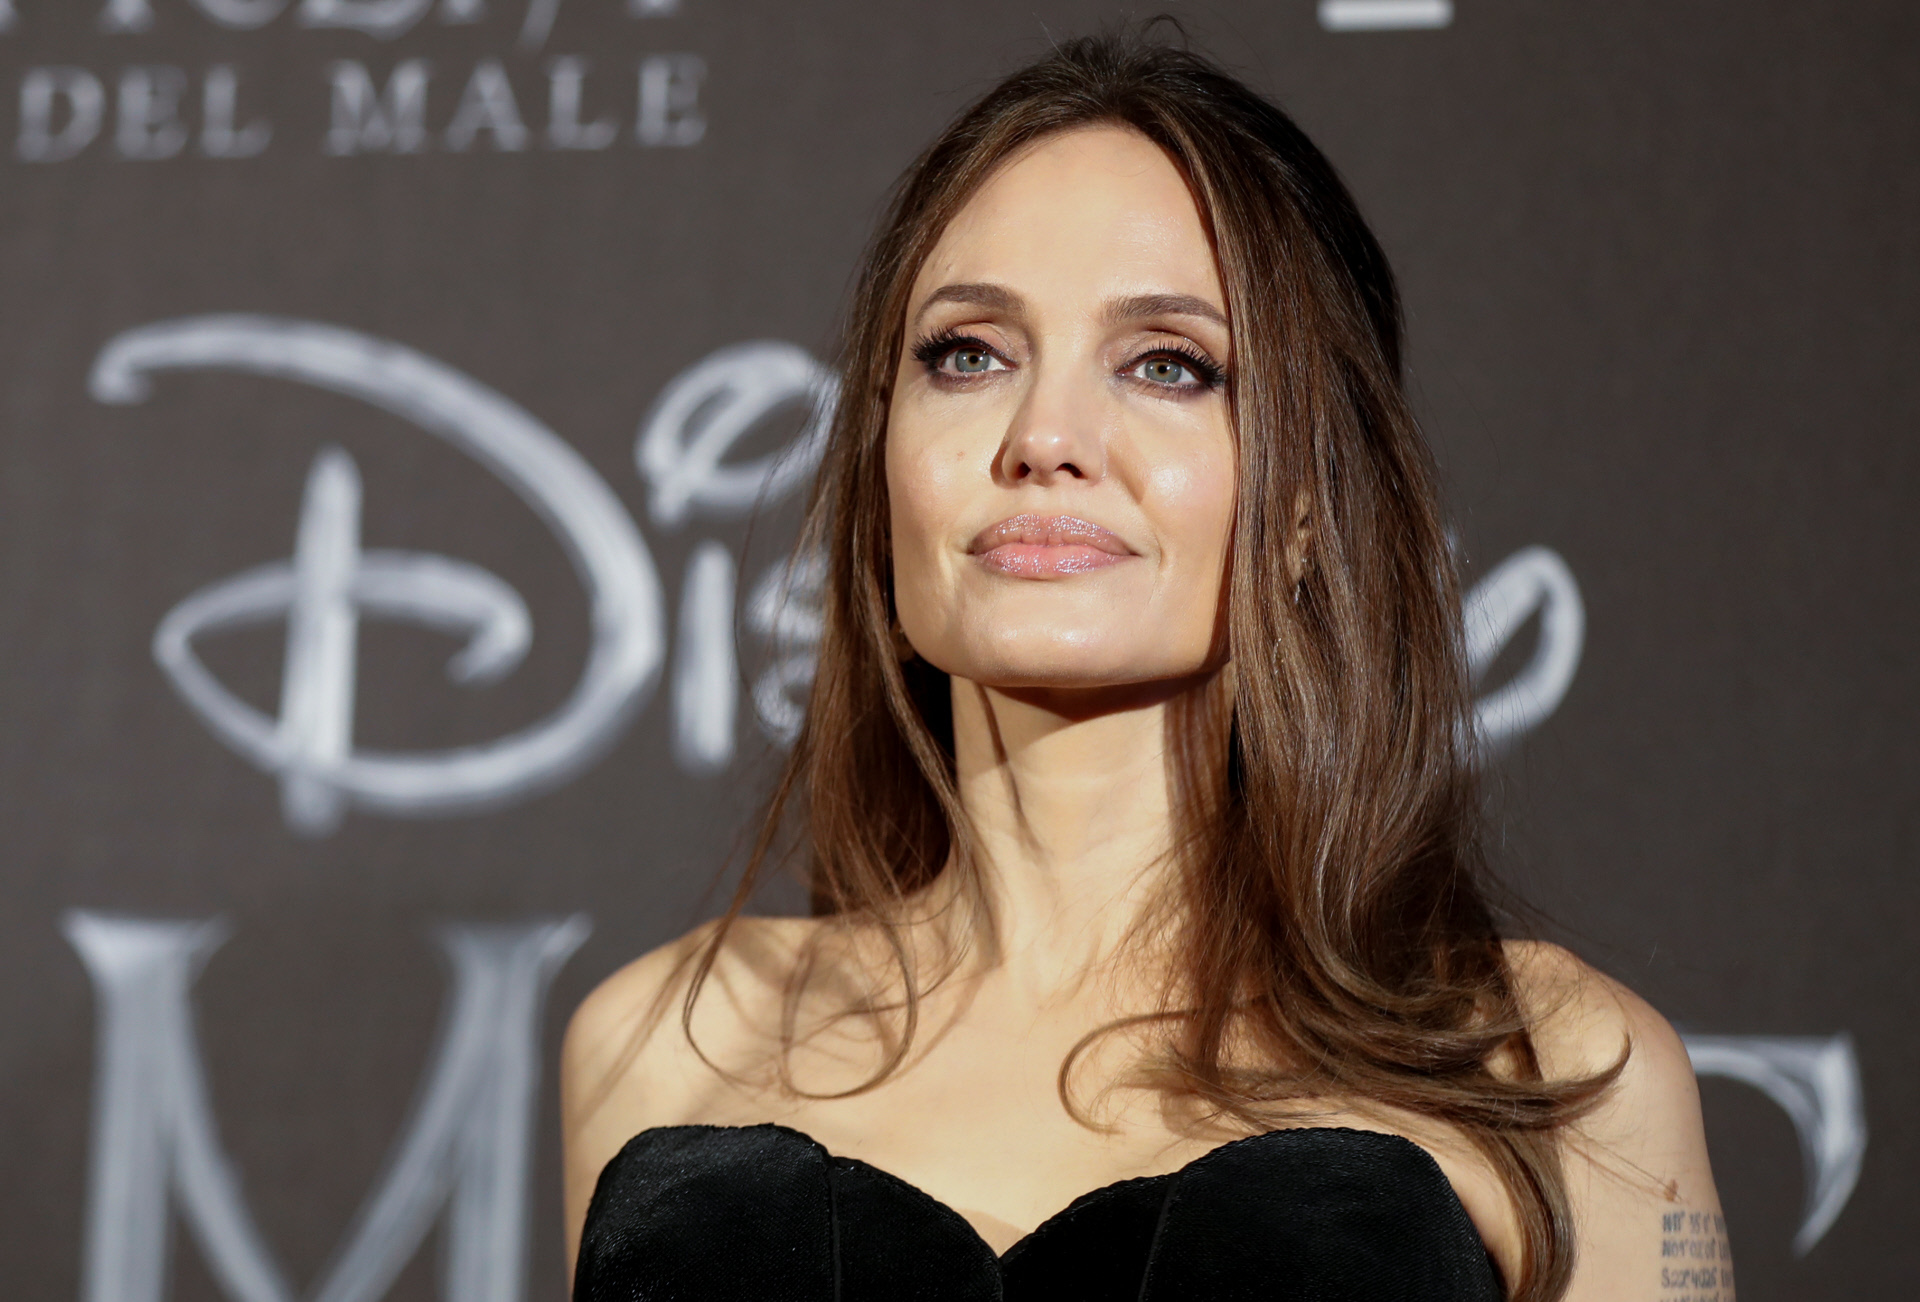 """Actress Angelina Jolie at photocall for the European premiere of """"Maleficent: Mistress of Evil"""" in Rome, Italy, October 7, 2019."""